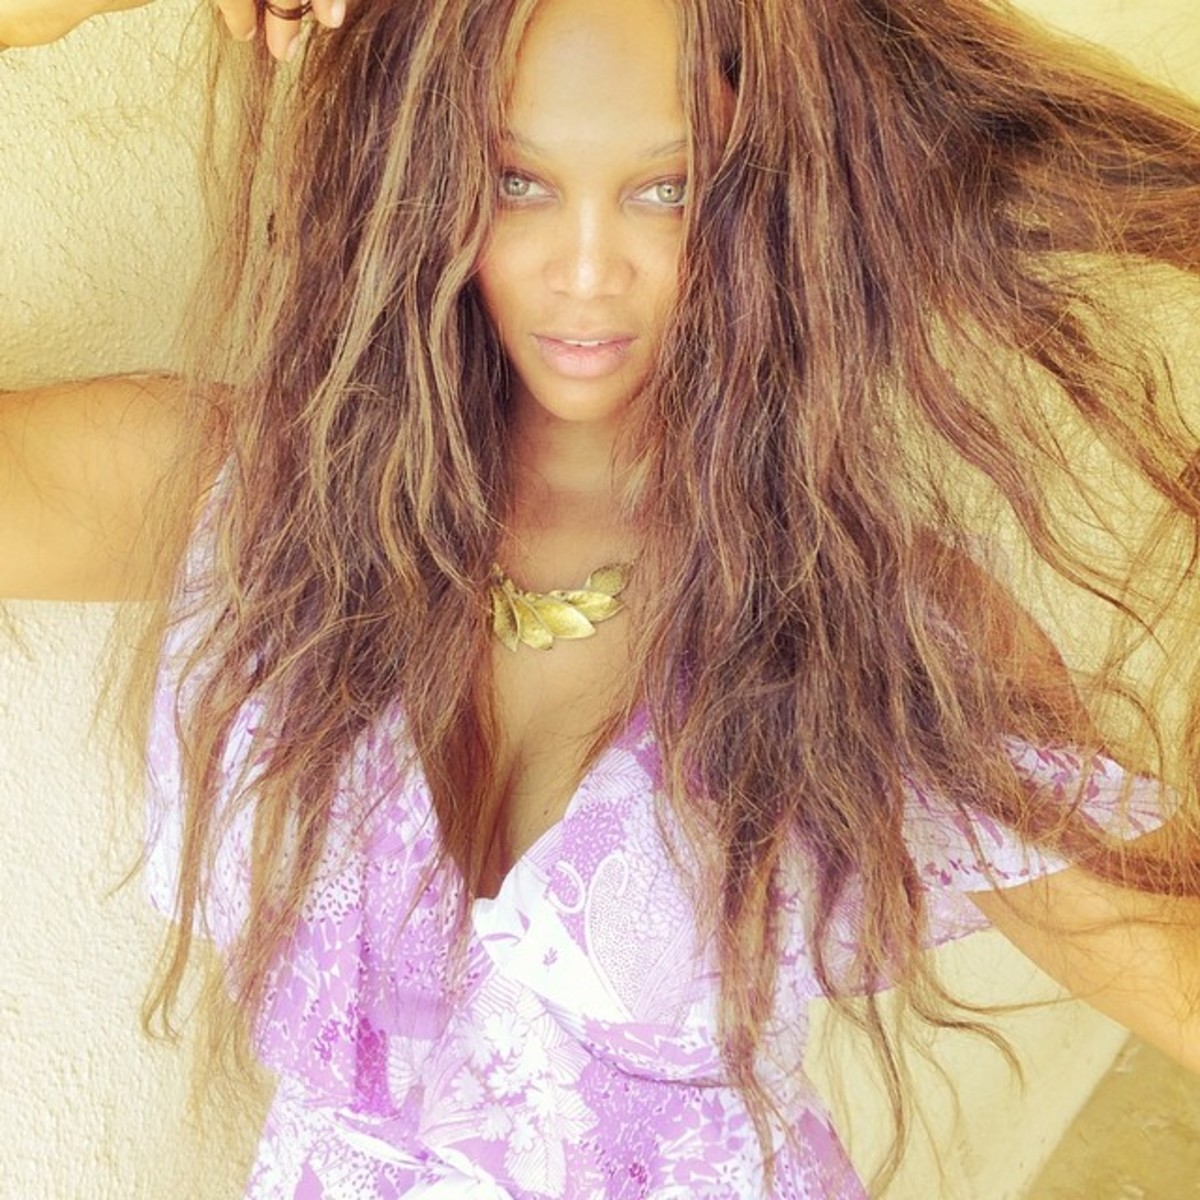 insta-tyrabanks-stand-against-wall-pull-on-your-hair-or-weave-stare-into-lens-think-about-something-that-makes-you-happy-then-click.jpg